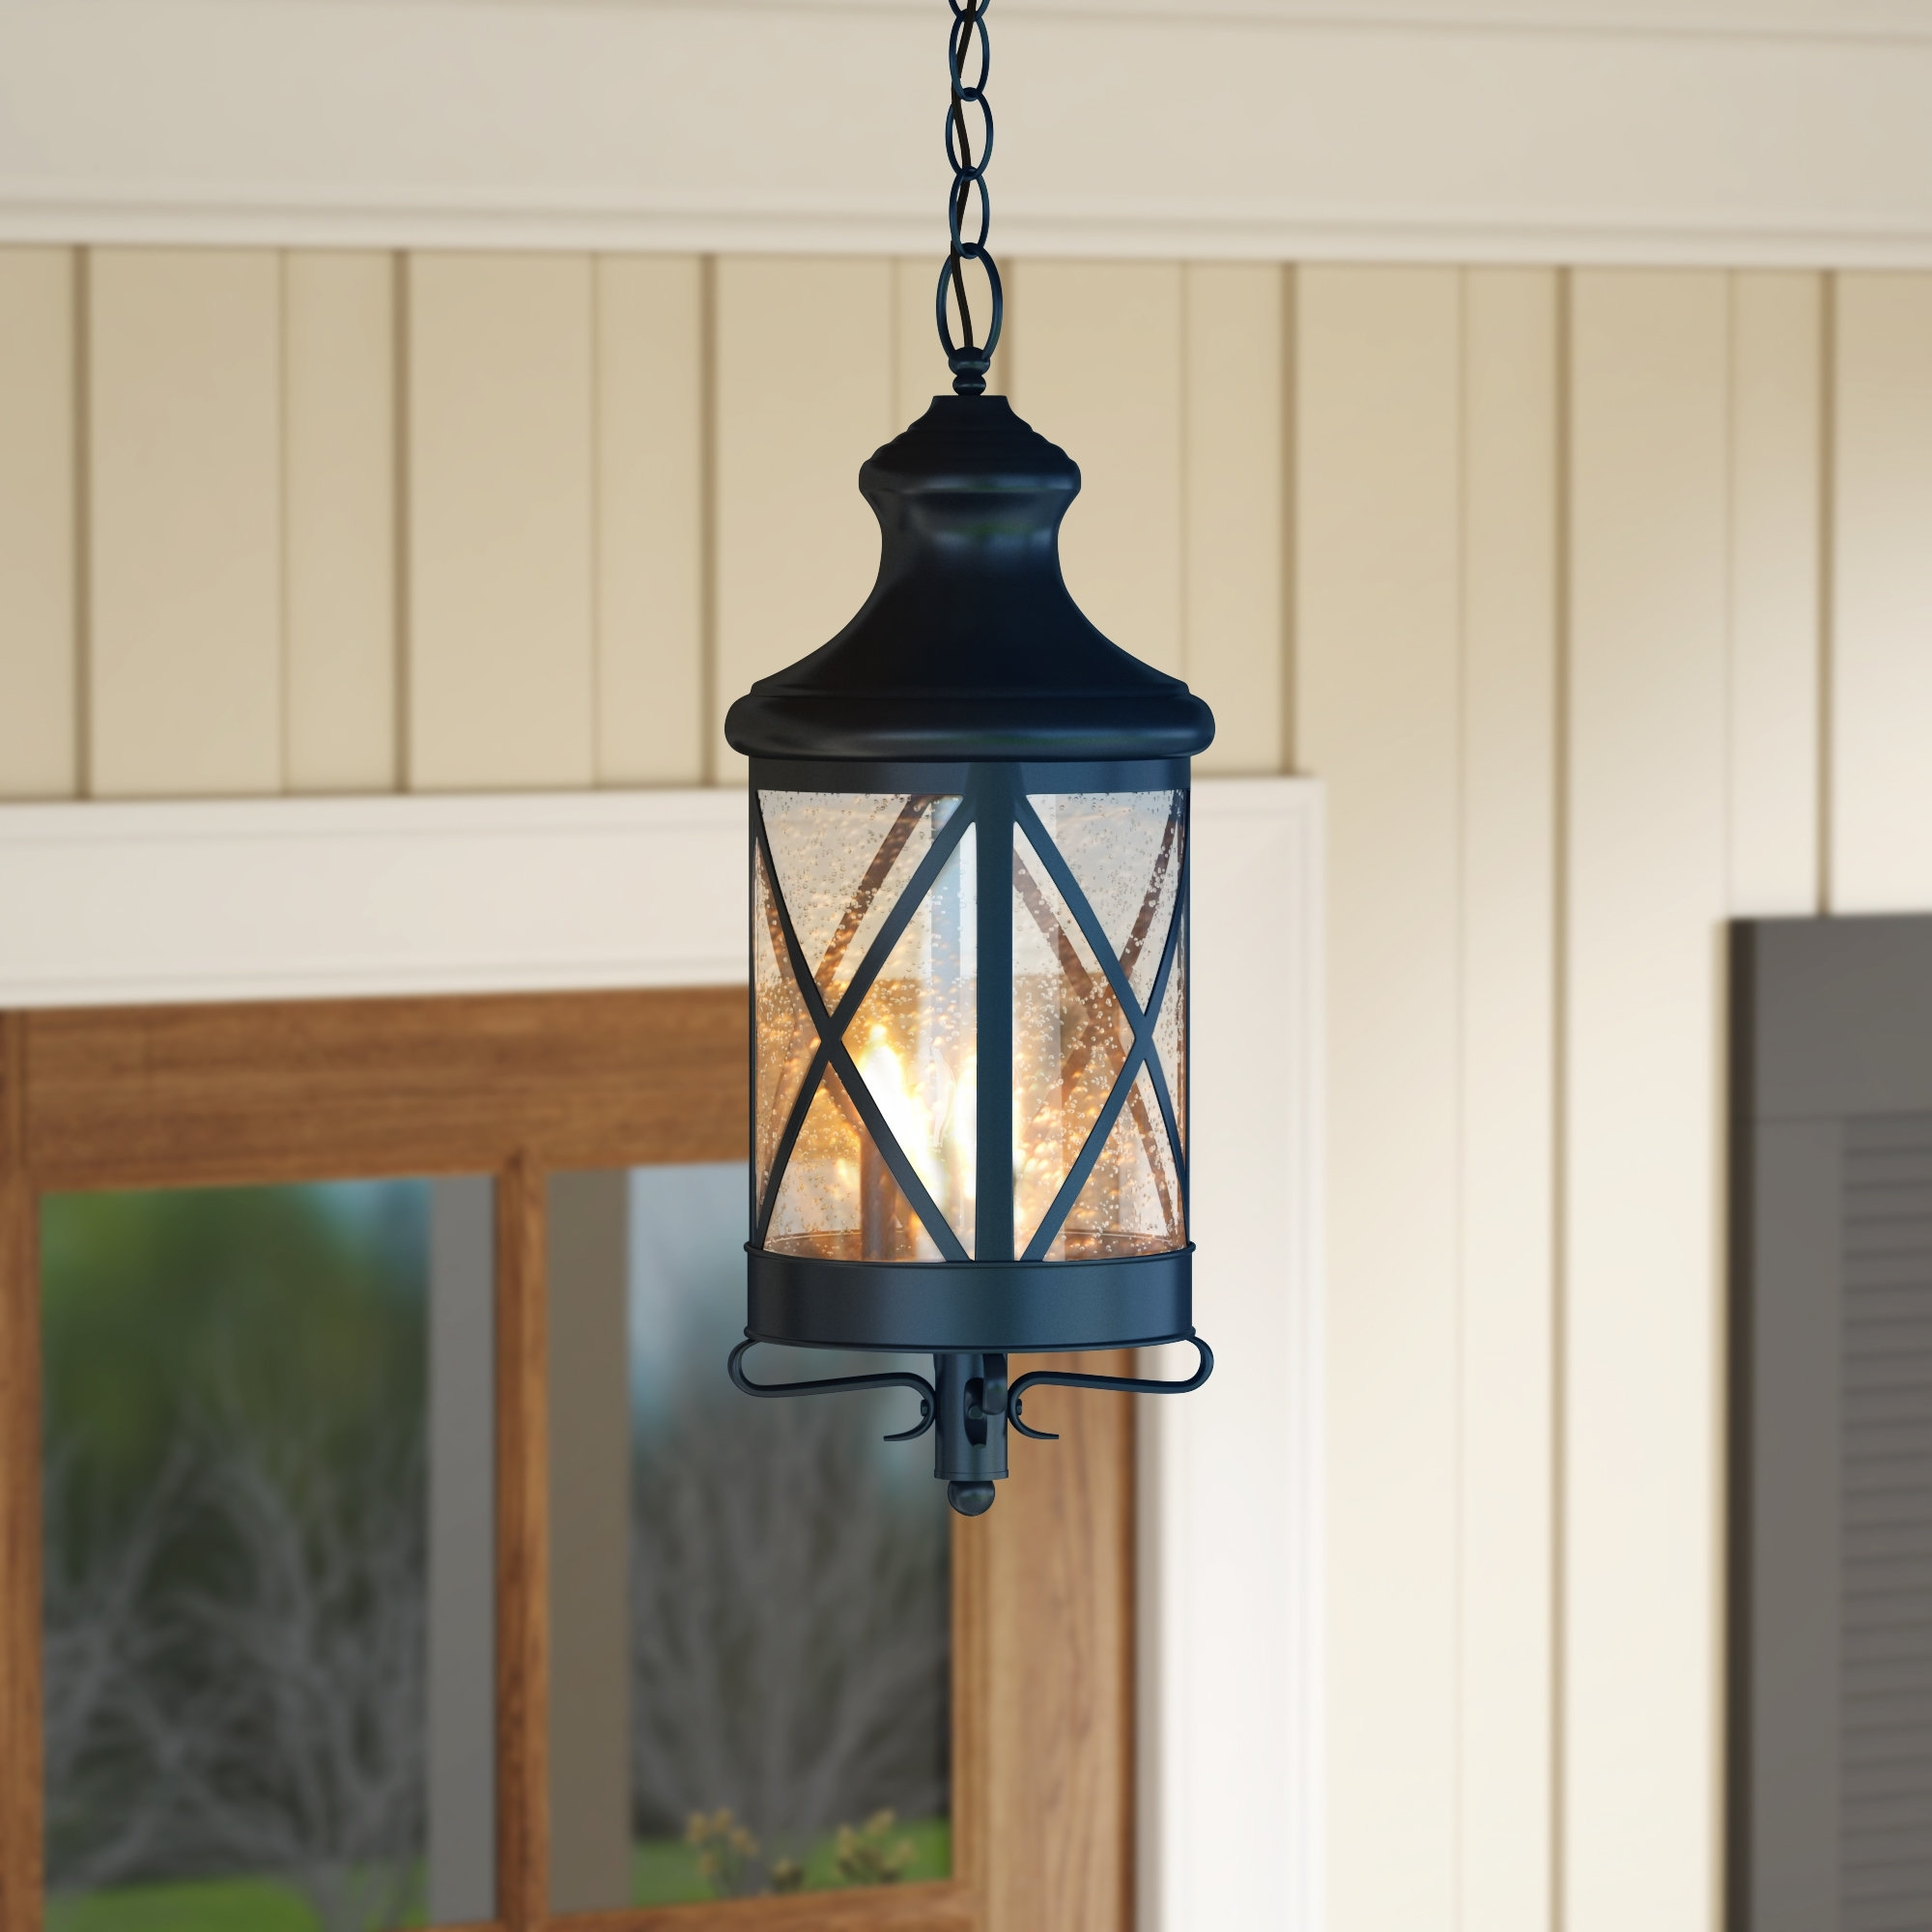 Gracie Oaks Luqi 3-Light Outdoor Hanging Lantern & Reviews | Wayfair with Outdoor Hanging Electric Lanterns (Image 9 of 20)